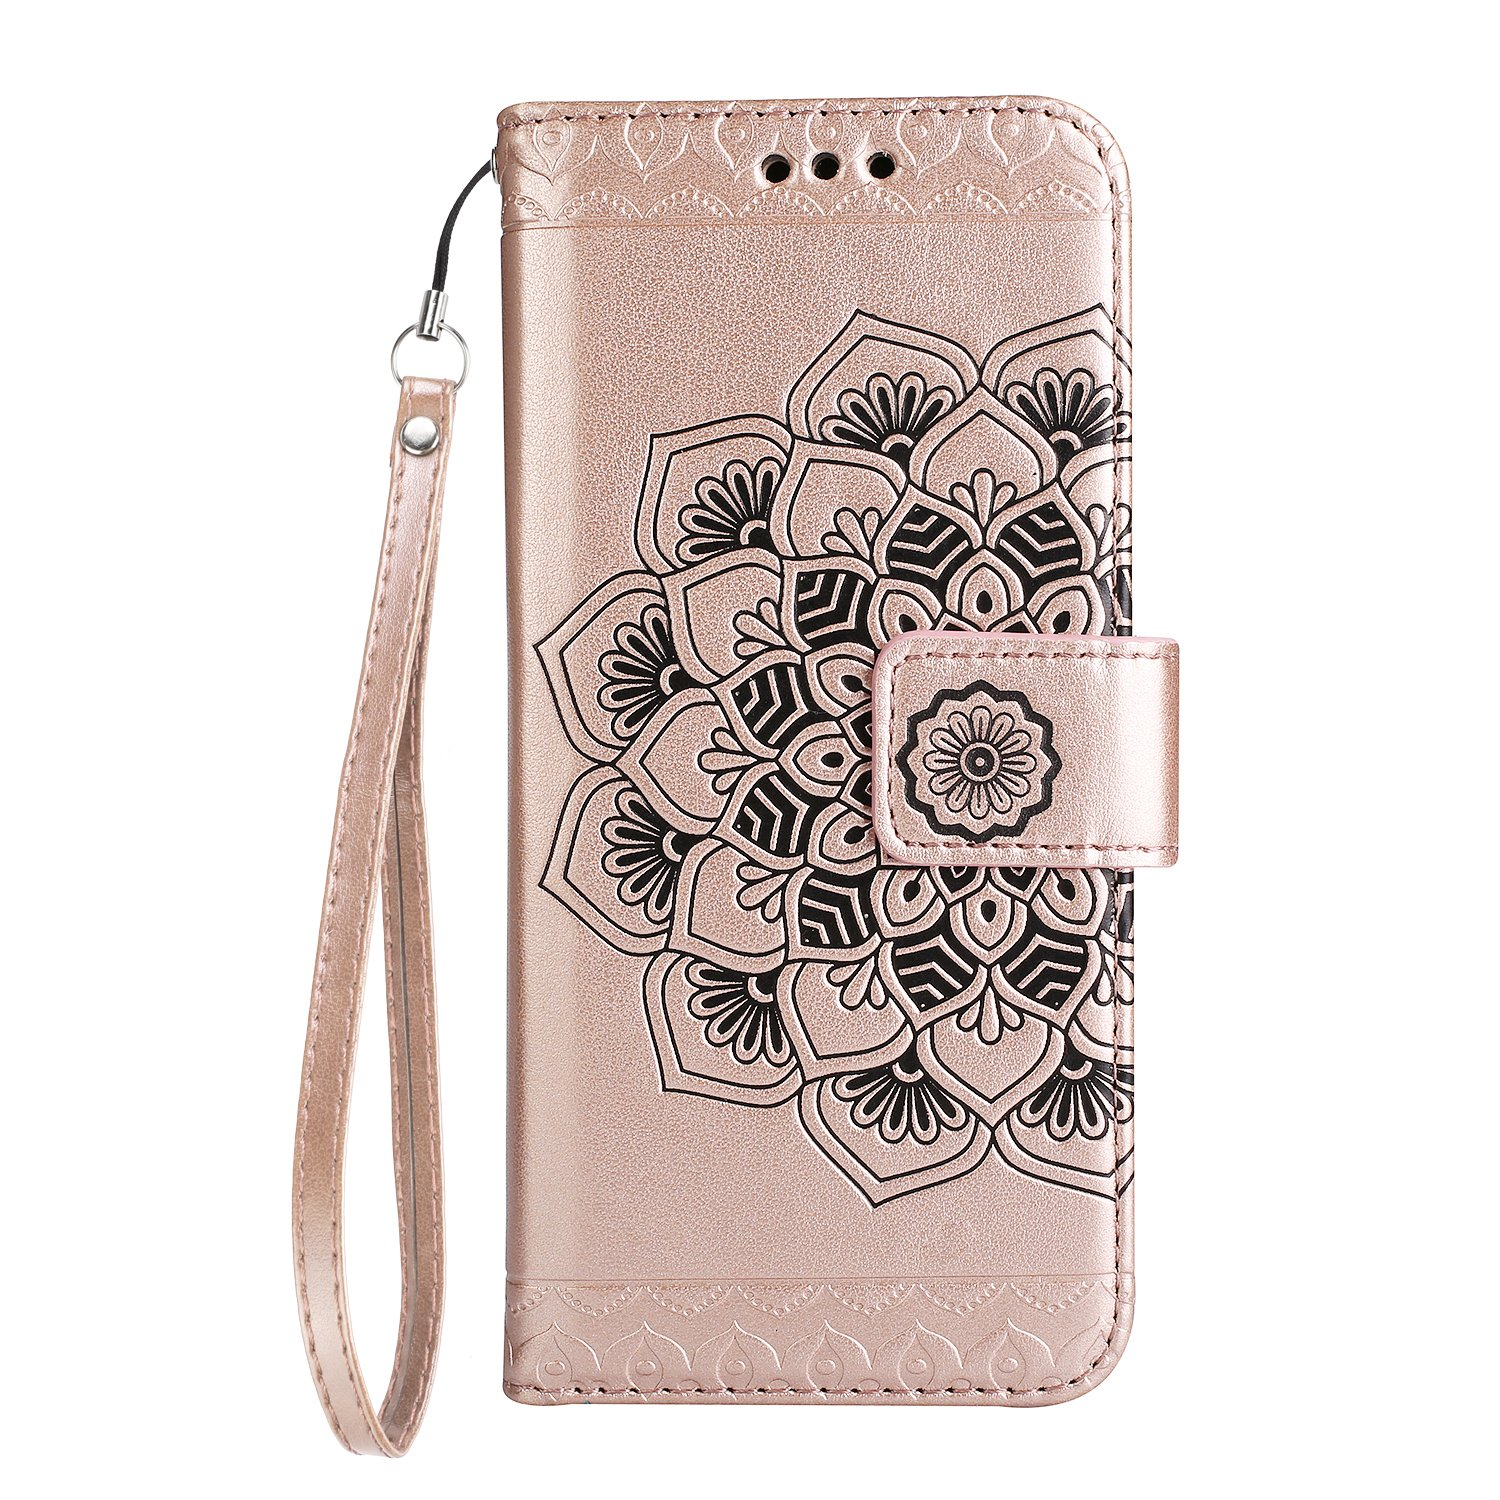 Amazon.com: NEXCURIO [Embossed Flower] Moto G4 / G4 Plus Wallet Case with Card Holder Folding Kickstand Leather Case Flip Cover for Motorola Moto G 4th ...